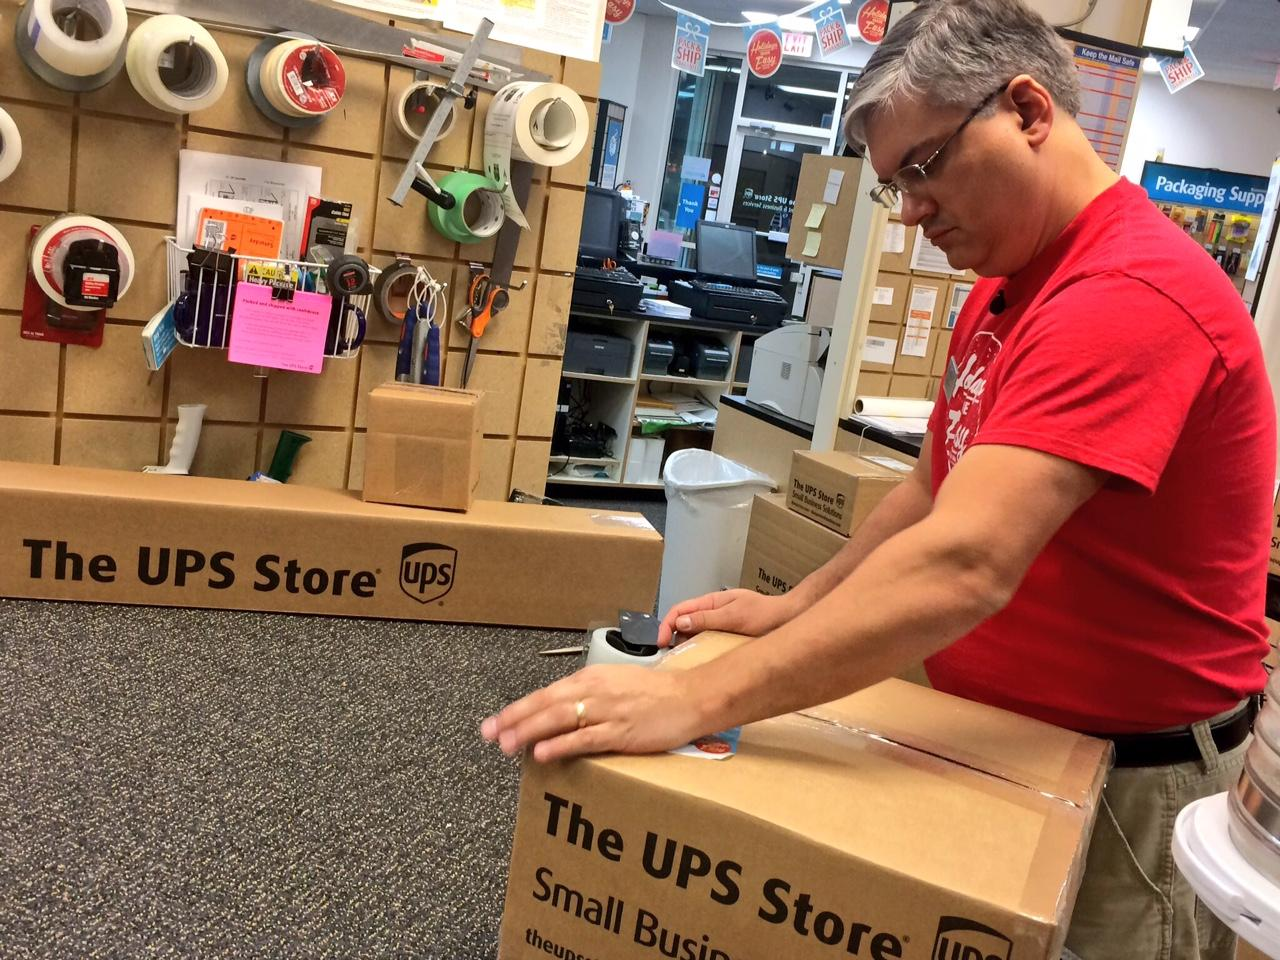 If you have not already packaged your items for shipping, you can leave it to the UPS employees. &quot;Certified Packing Experts&quot; are trained to do the packing. UPS offers protection against loss or damage through the company's &quot;pack and ship guarantee.&quot; (Photo Credit: WLOS Staff).<p></p>